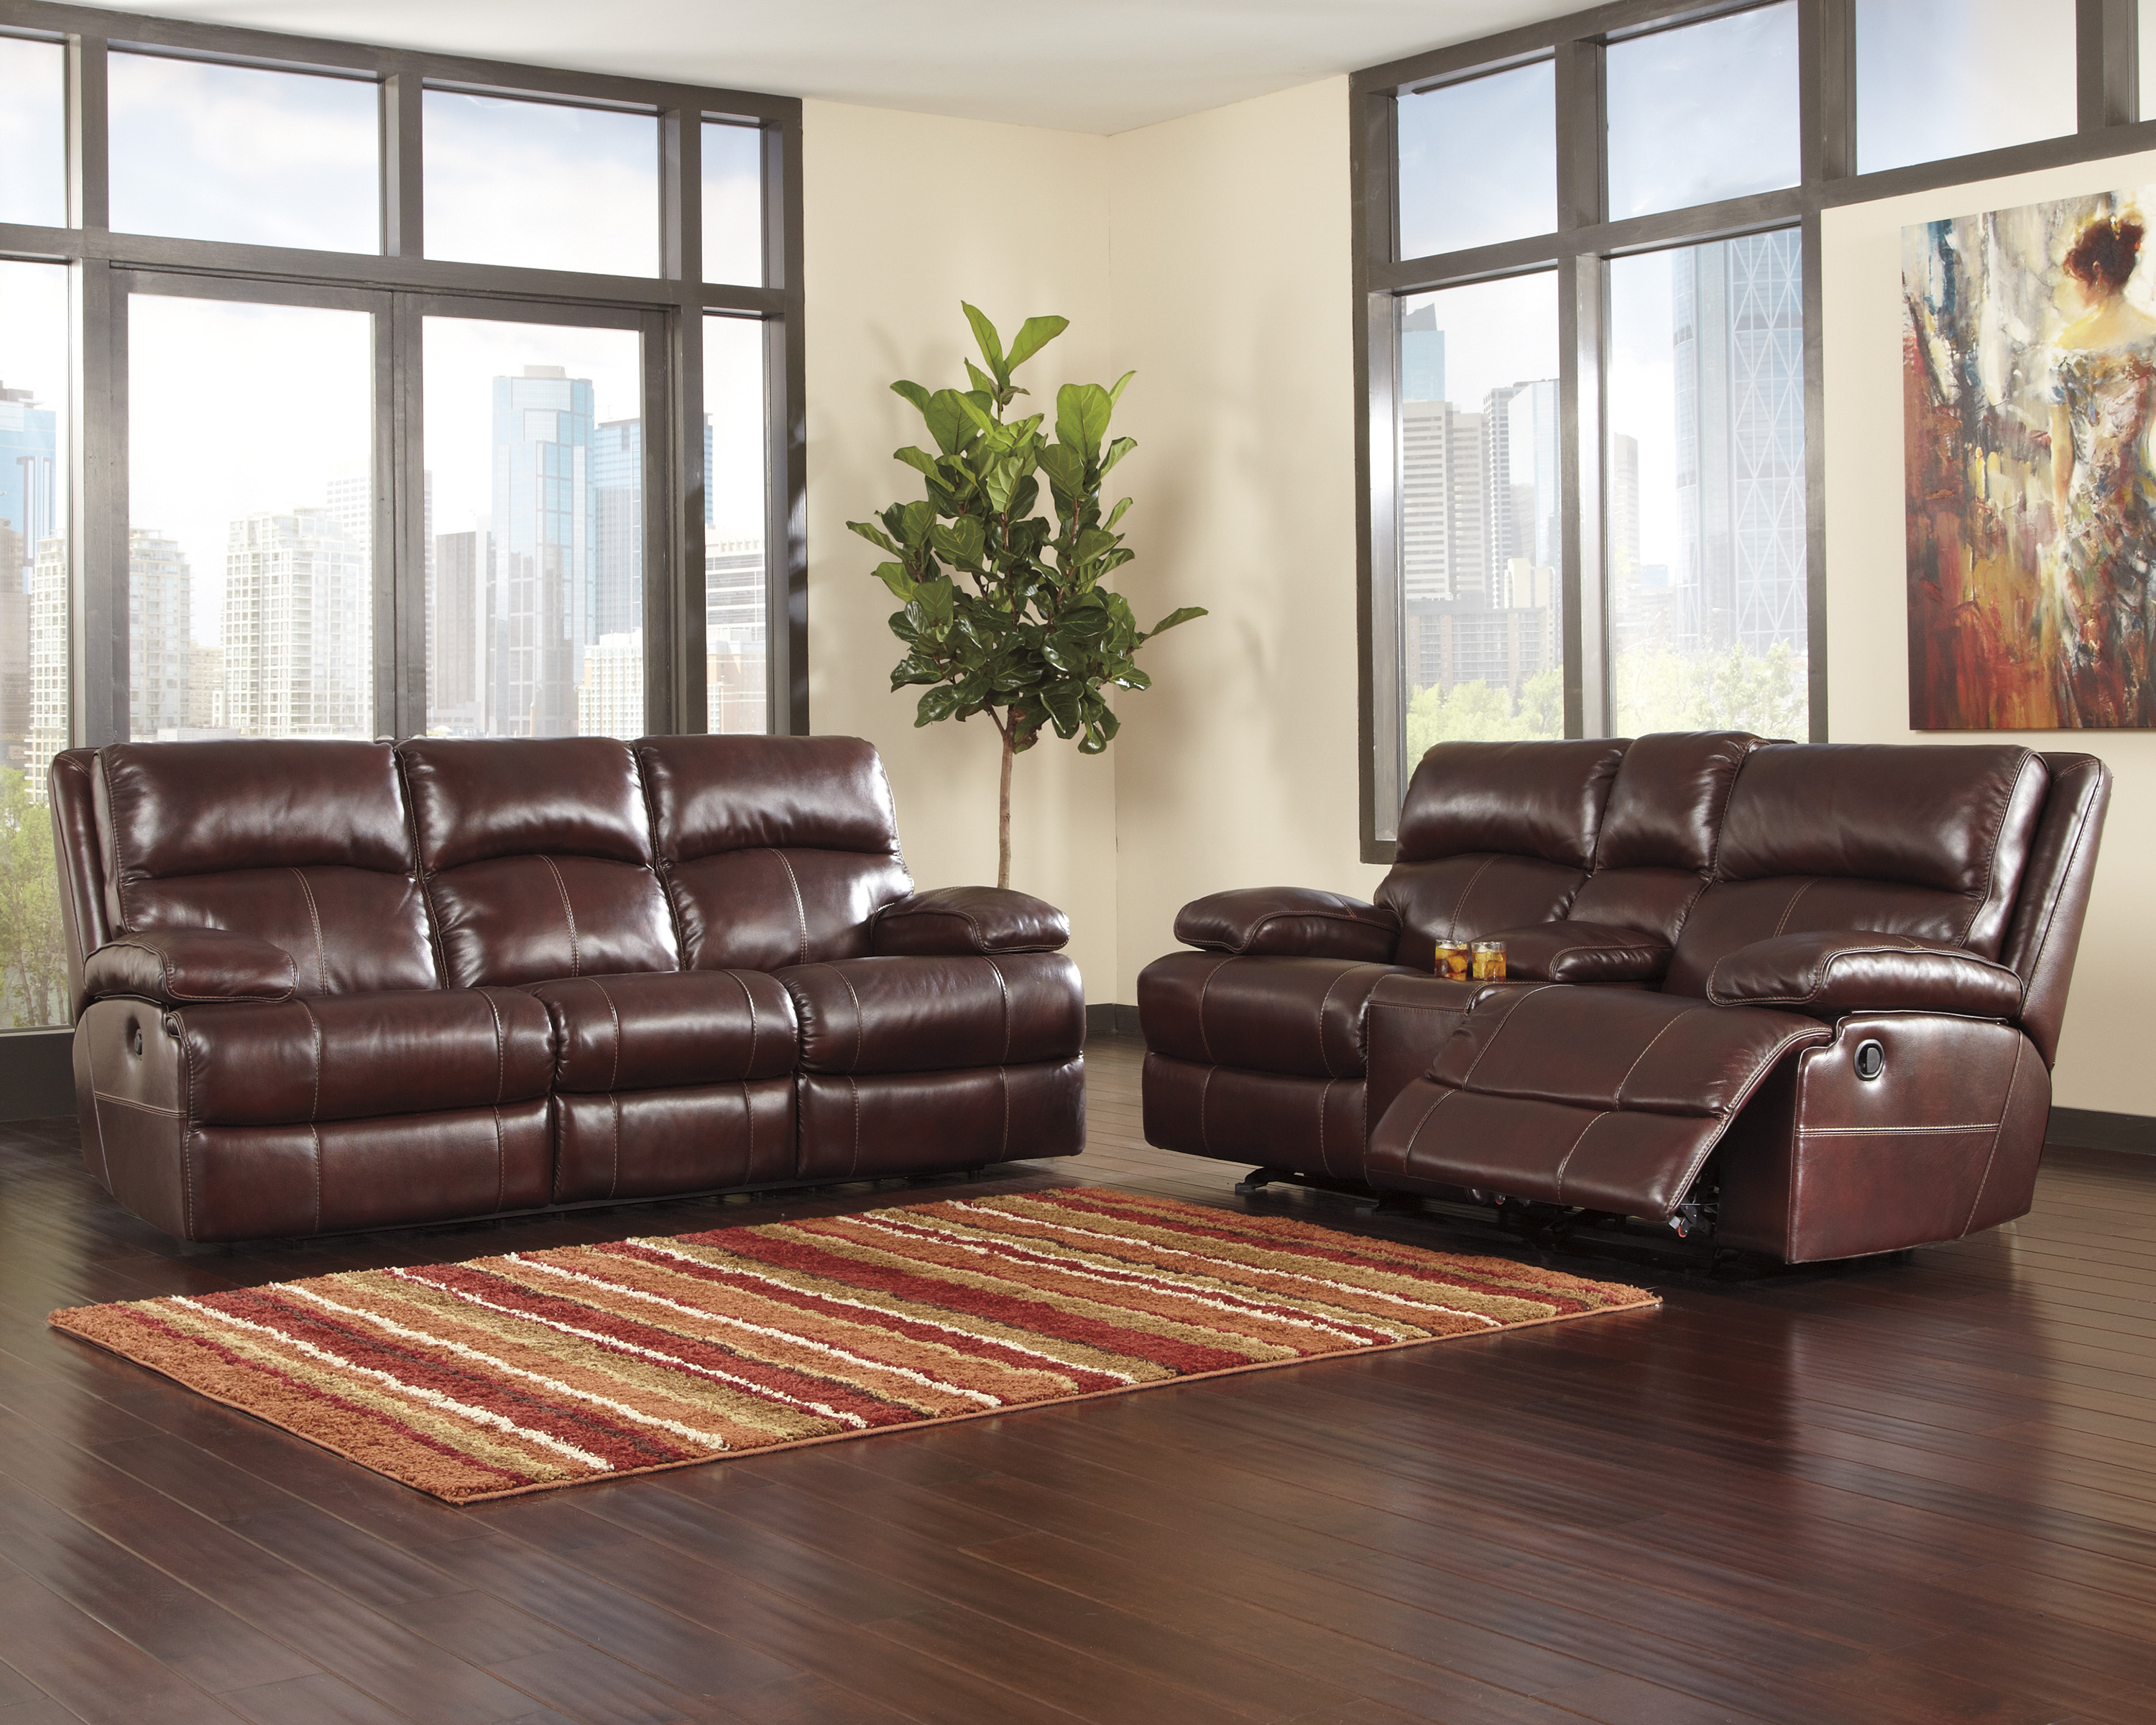 Living Room Recliner Chairs